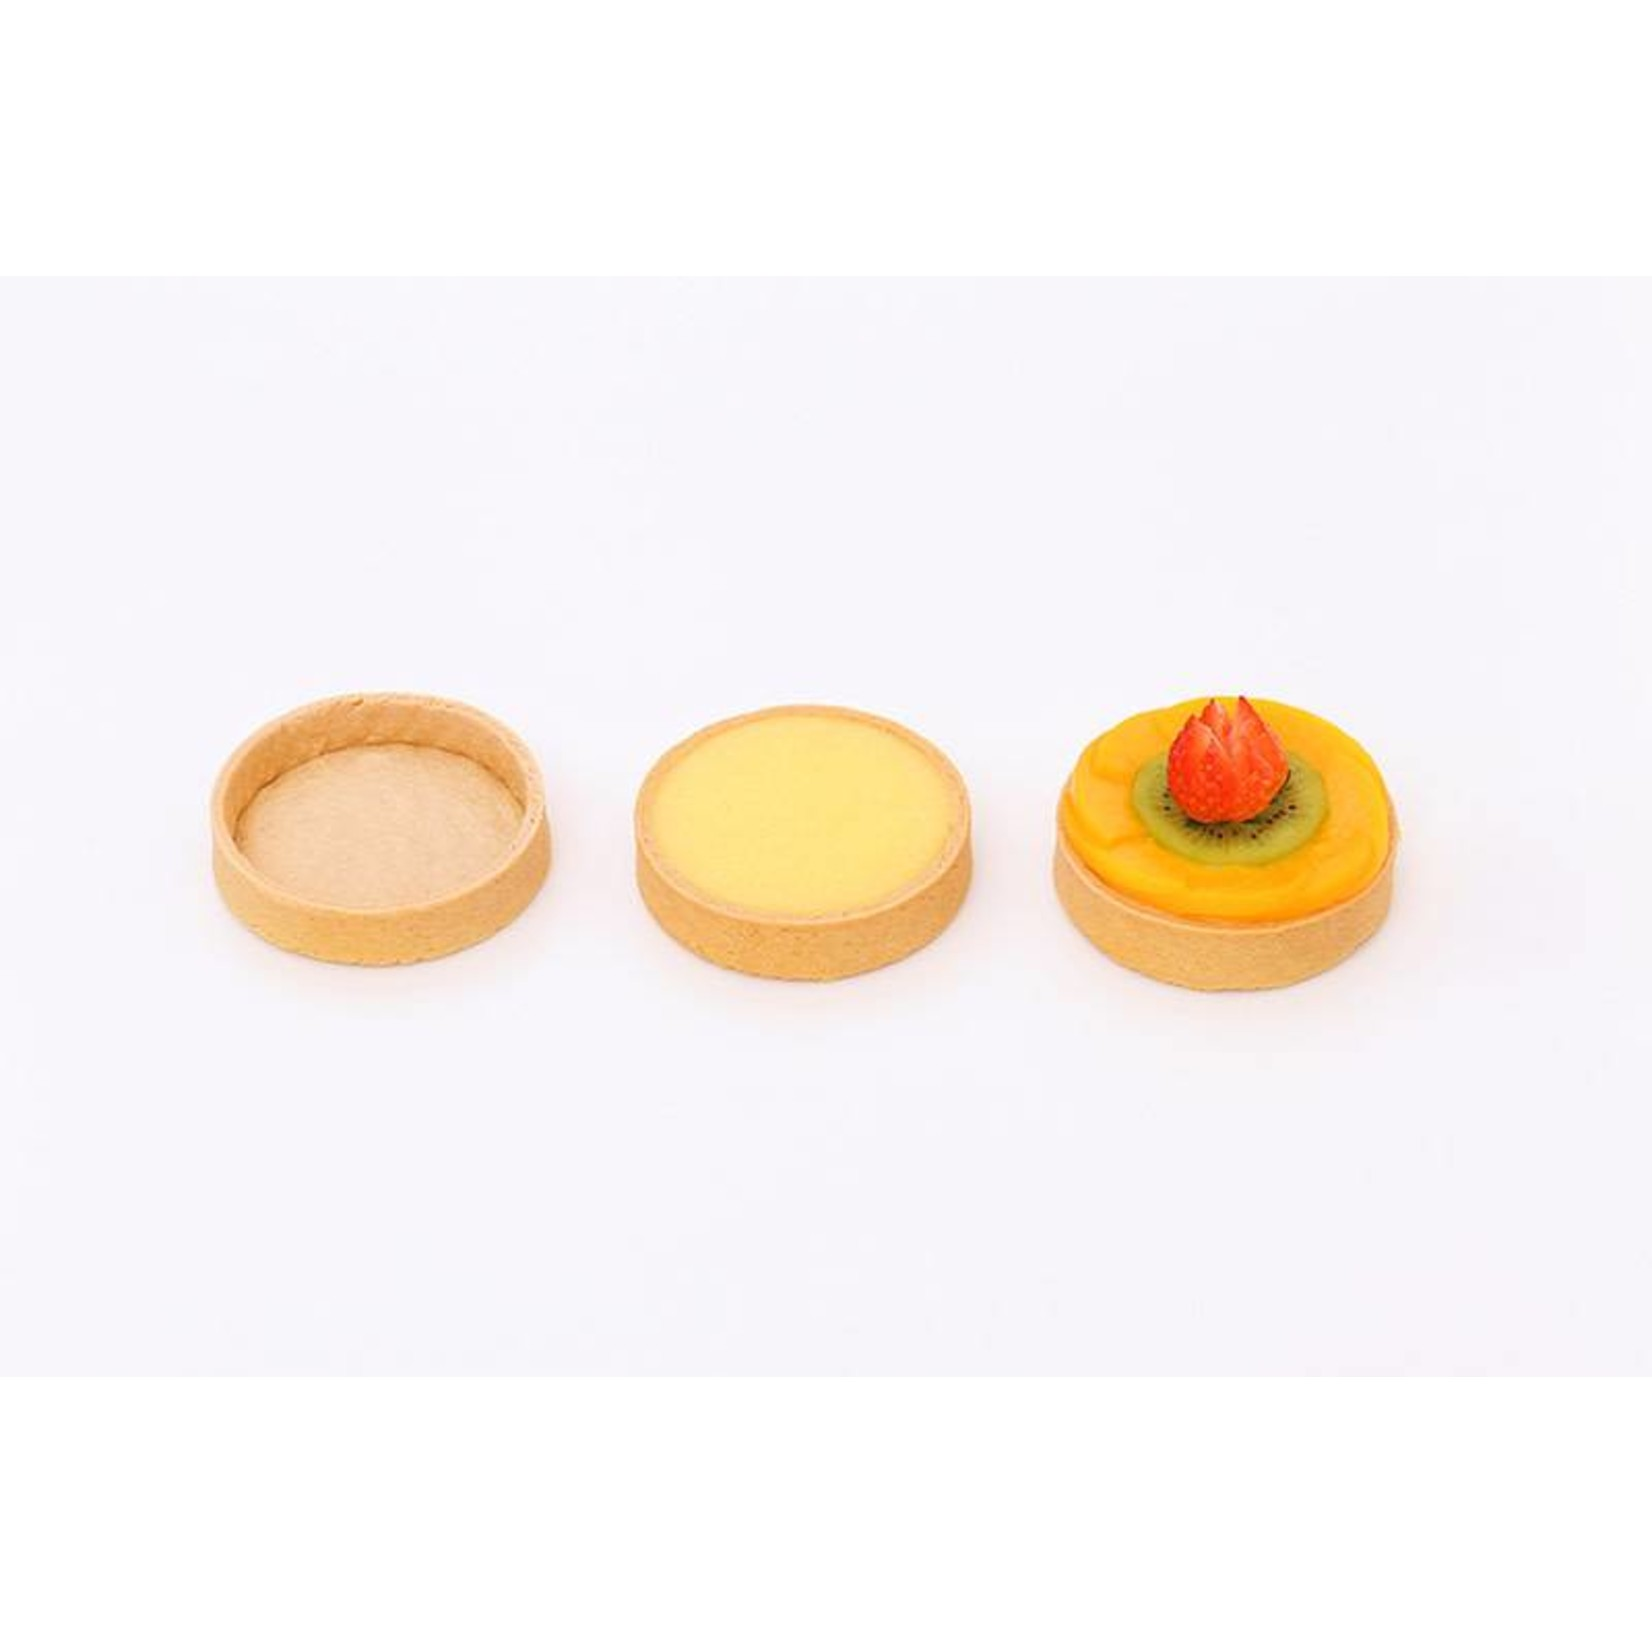 Delifrance Delifrance - Tart shell, Sweet round - 4'' (40ct), 79024